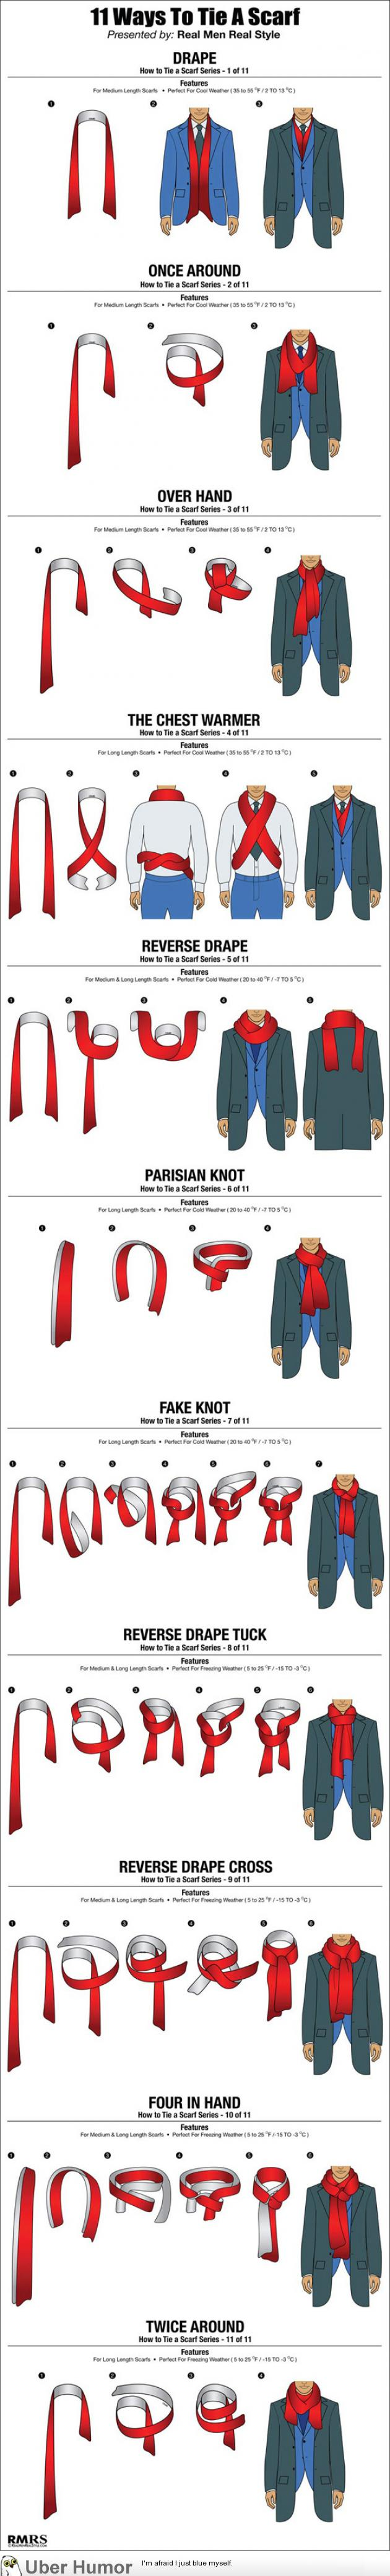 11 Ways A Guy Can Tie His Scarf